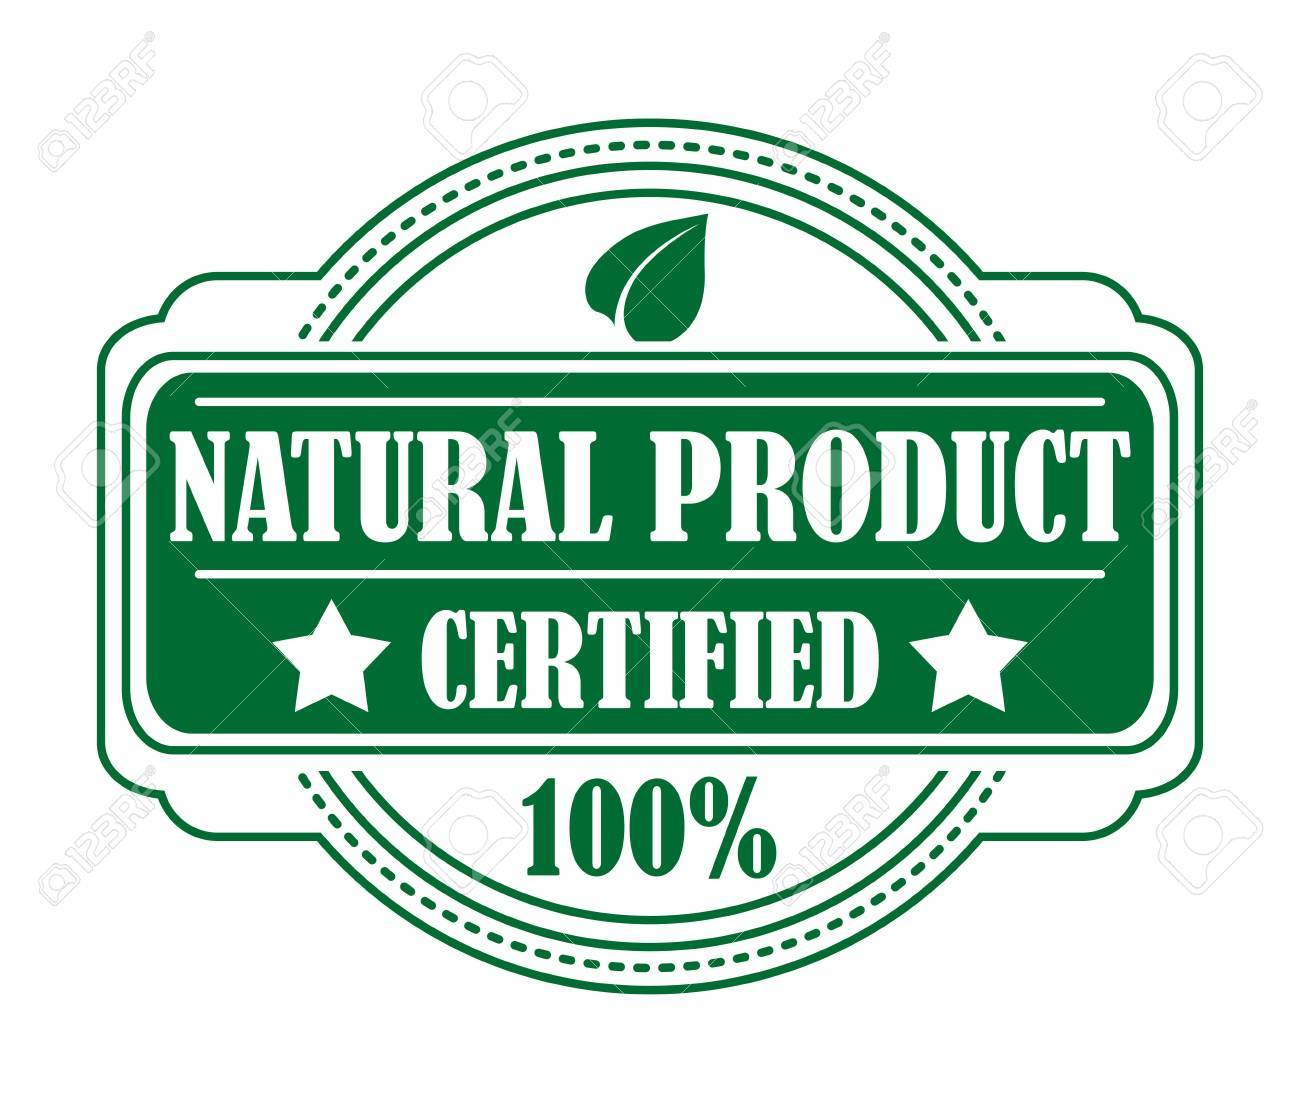 Green Colored Natural Product Label With 100 Percent Certification